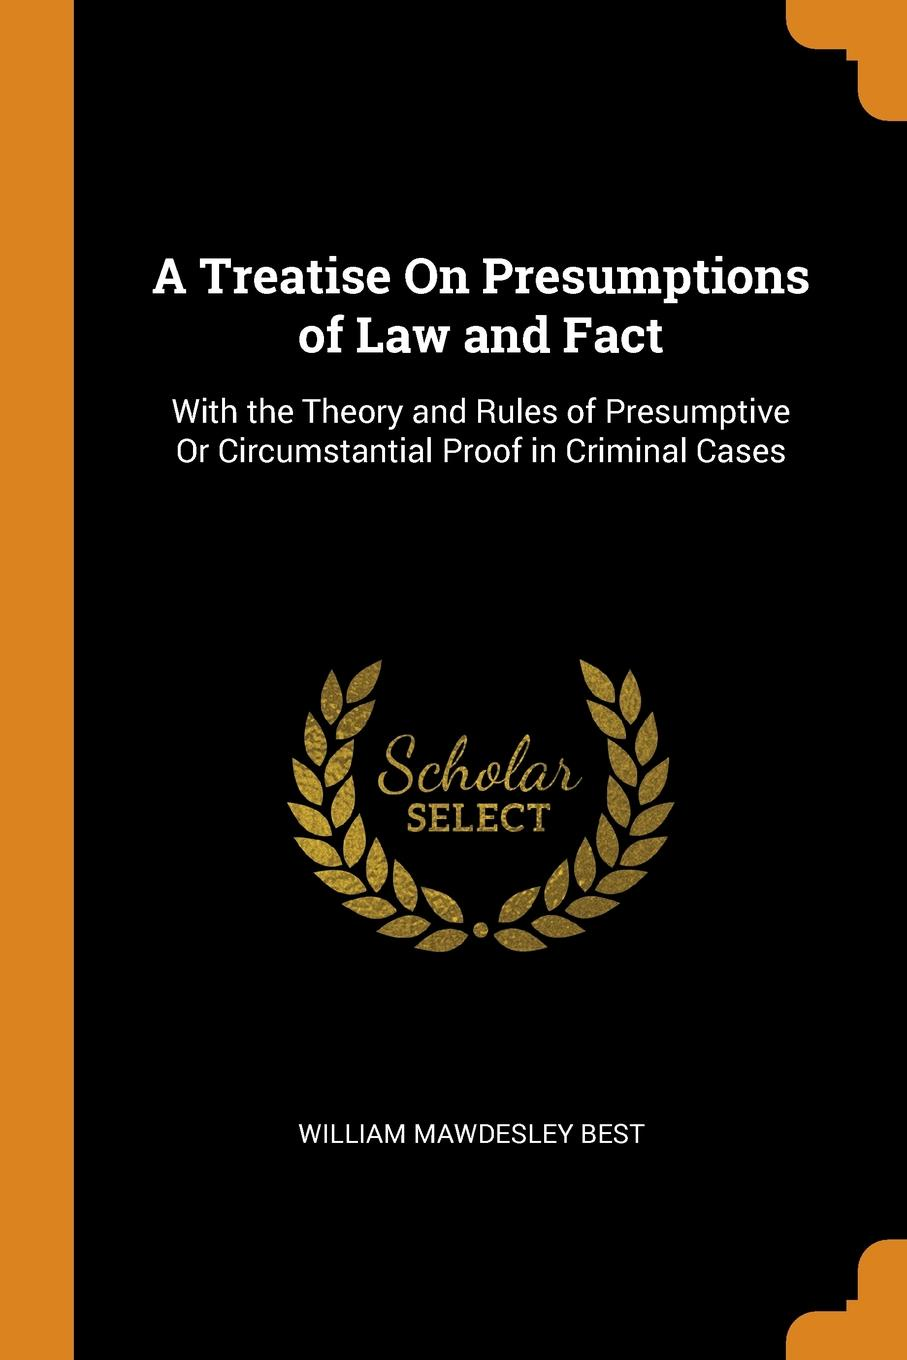 A Treatise On Presumptions of Law and Fact. With the Theory and Rules of Presumptive Or Circumstantial Proof in Criminal Cases. William Mawdesley Best